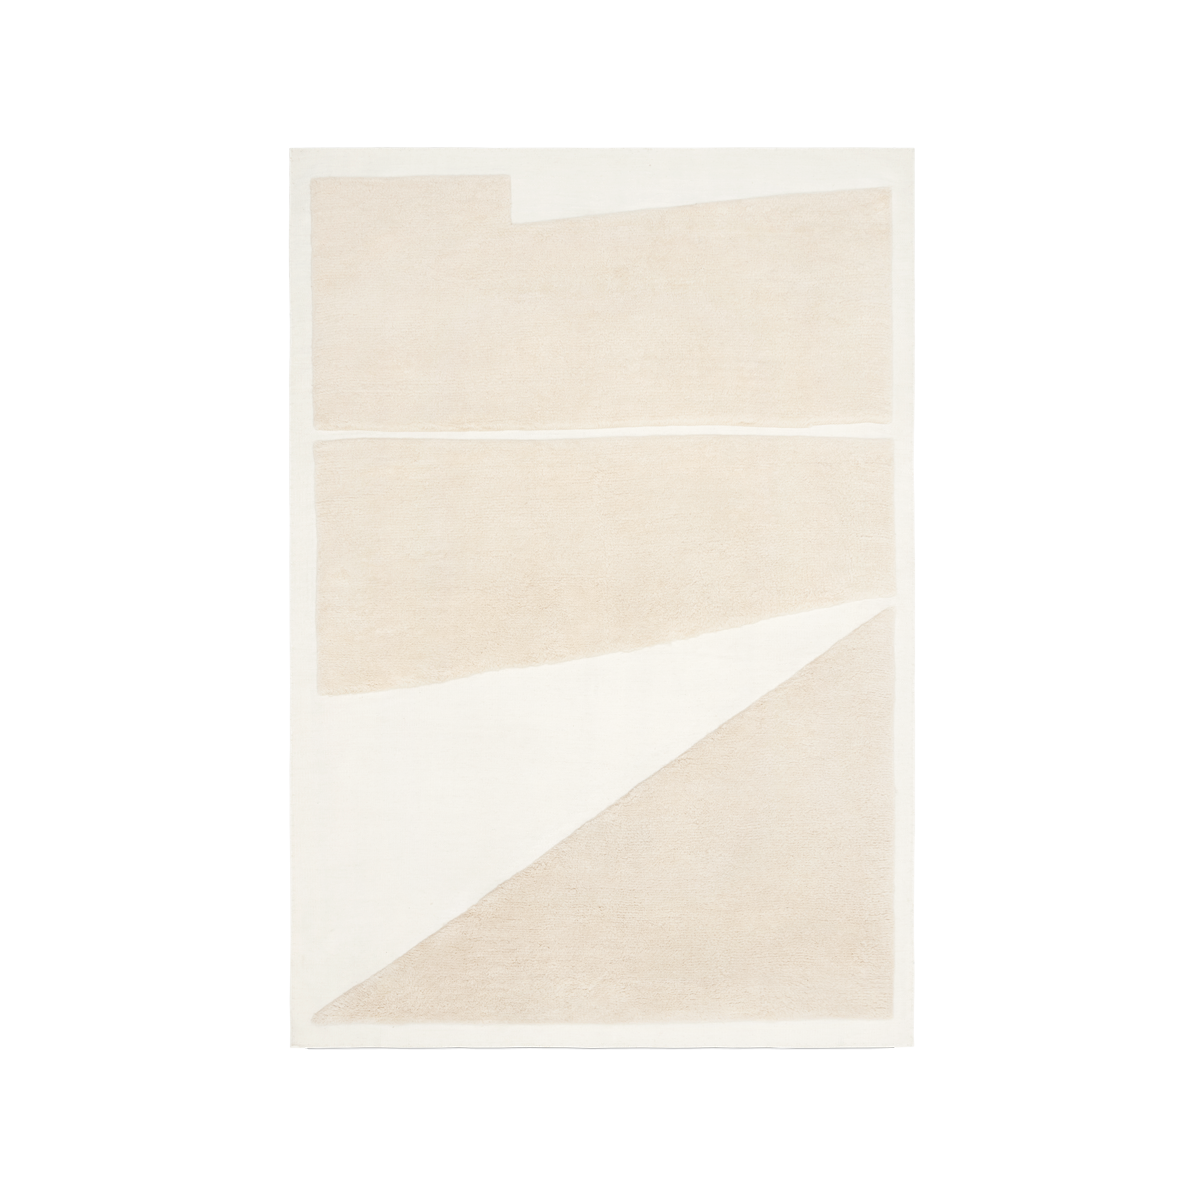 Product image of the flatweave and shaggy rug Untitled 2 in Cream and Almond.